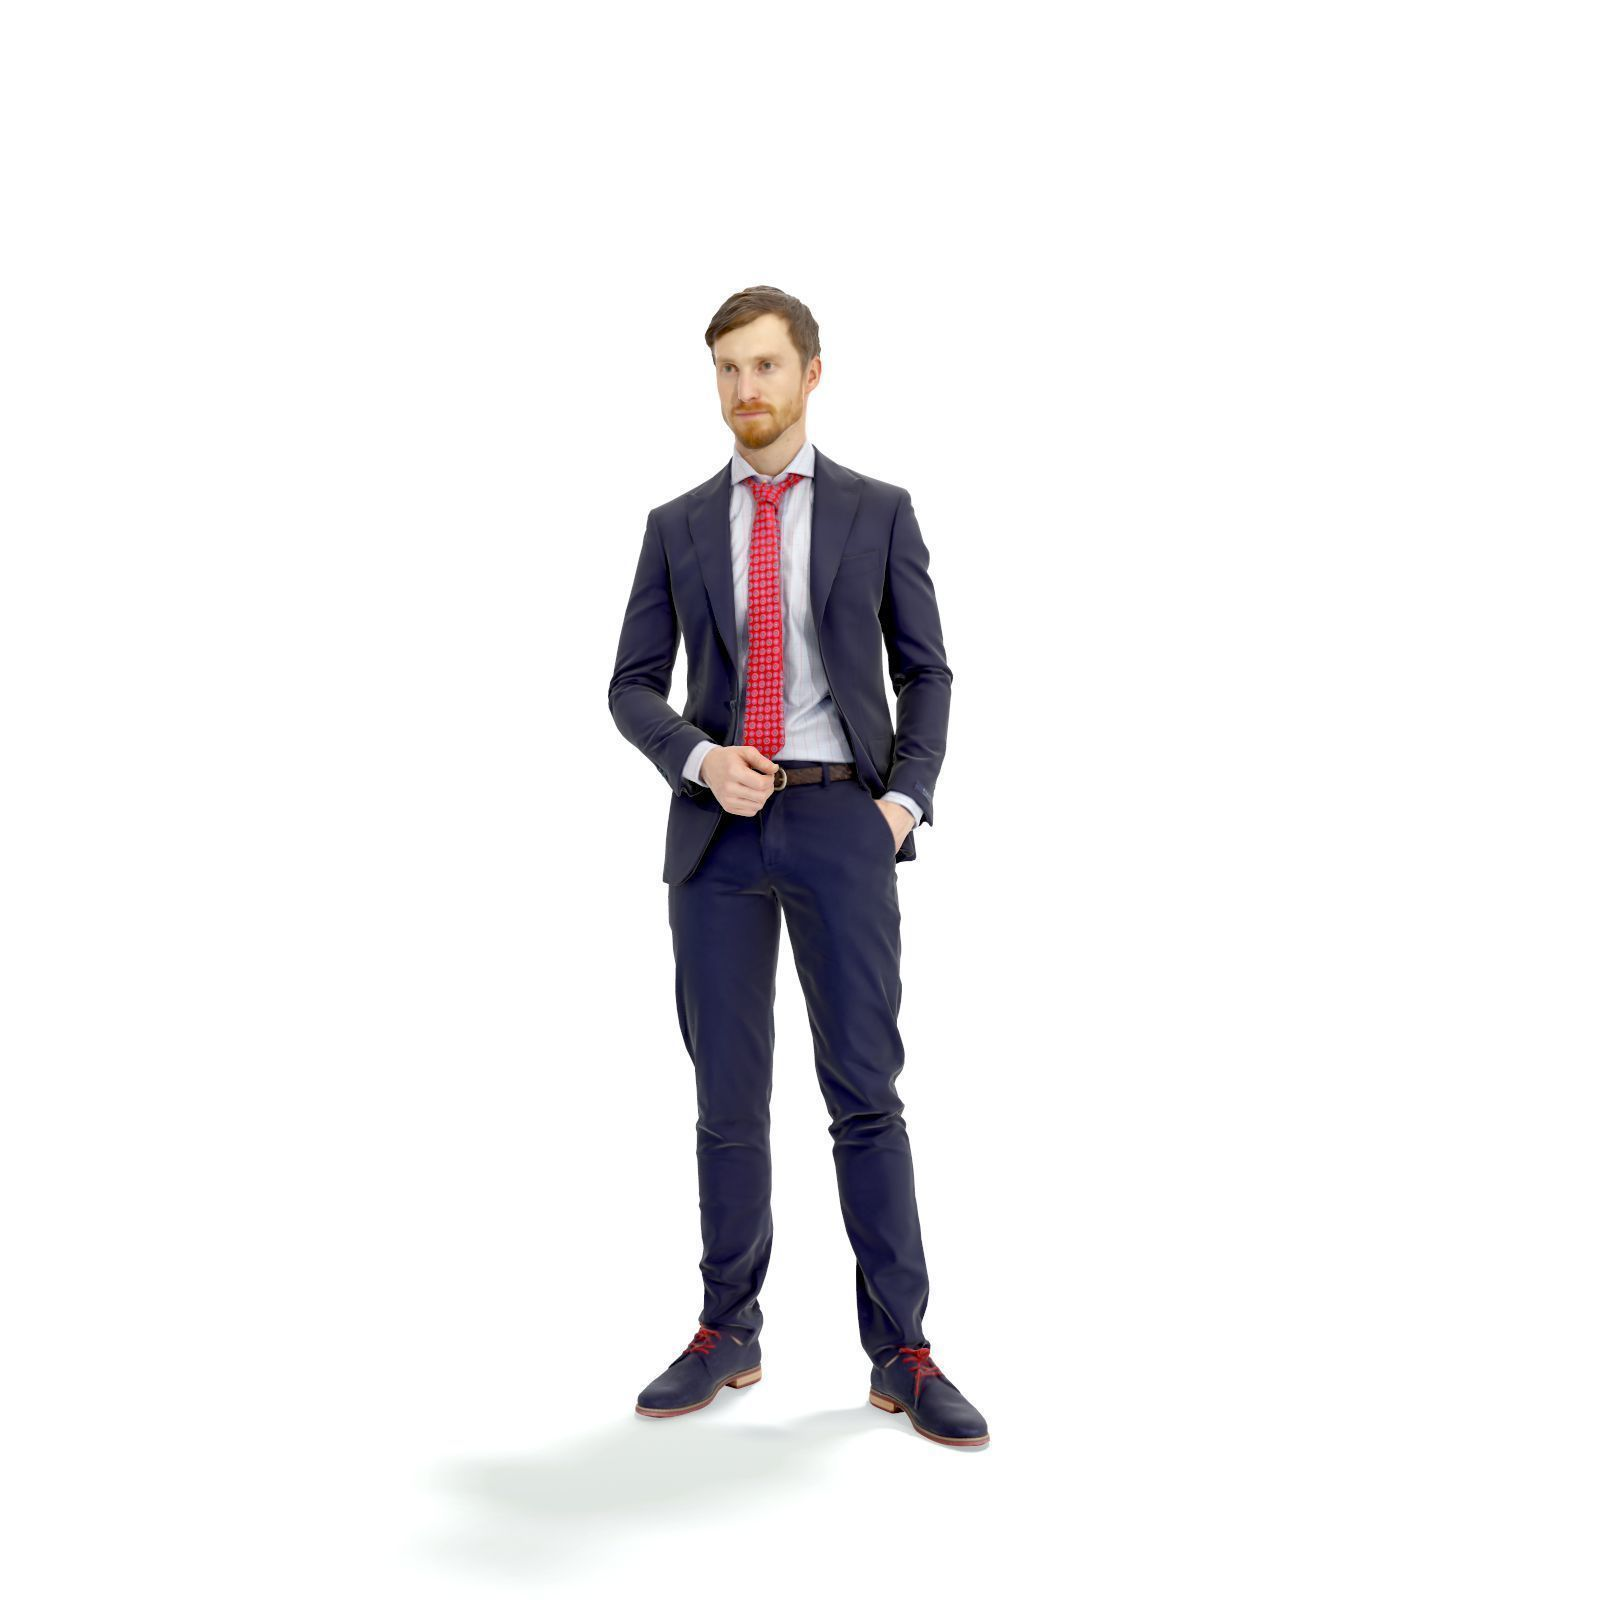 Standing Elegant Man with Red Tie EMan0313-HD2-O02P01-S